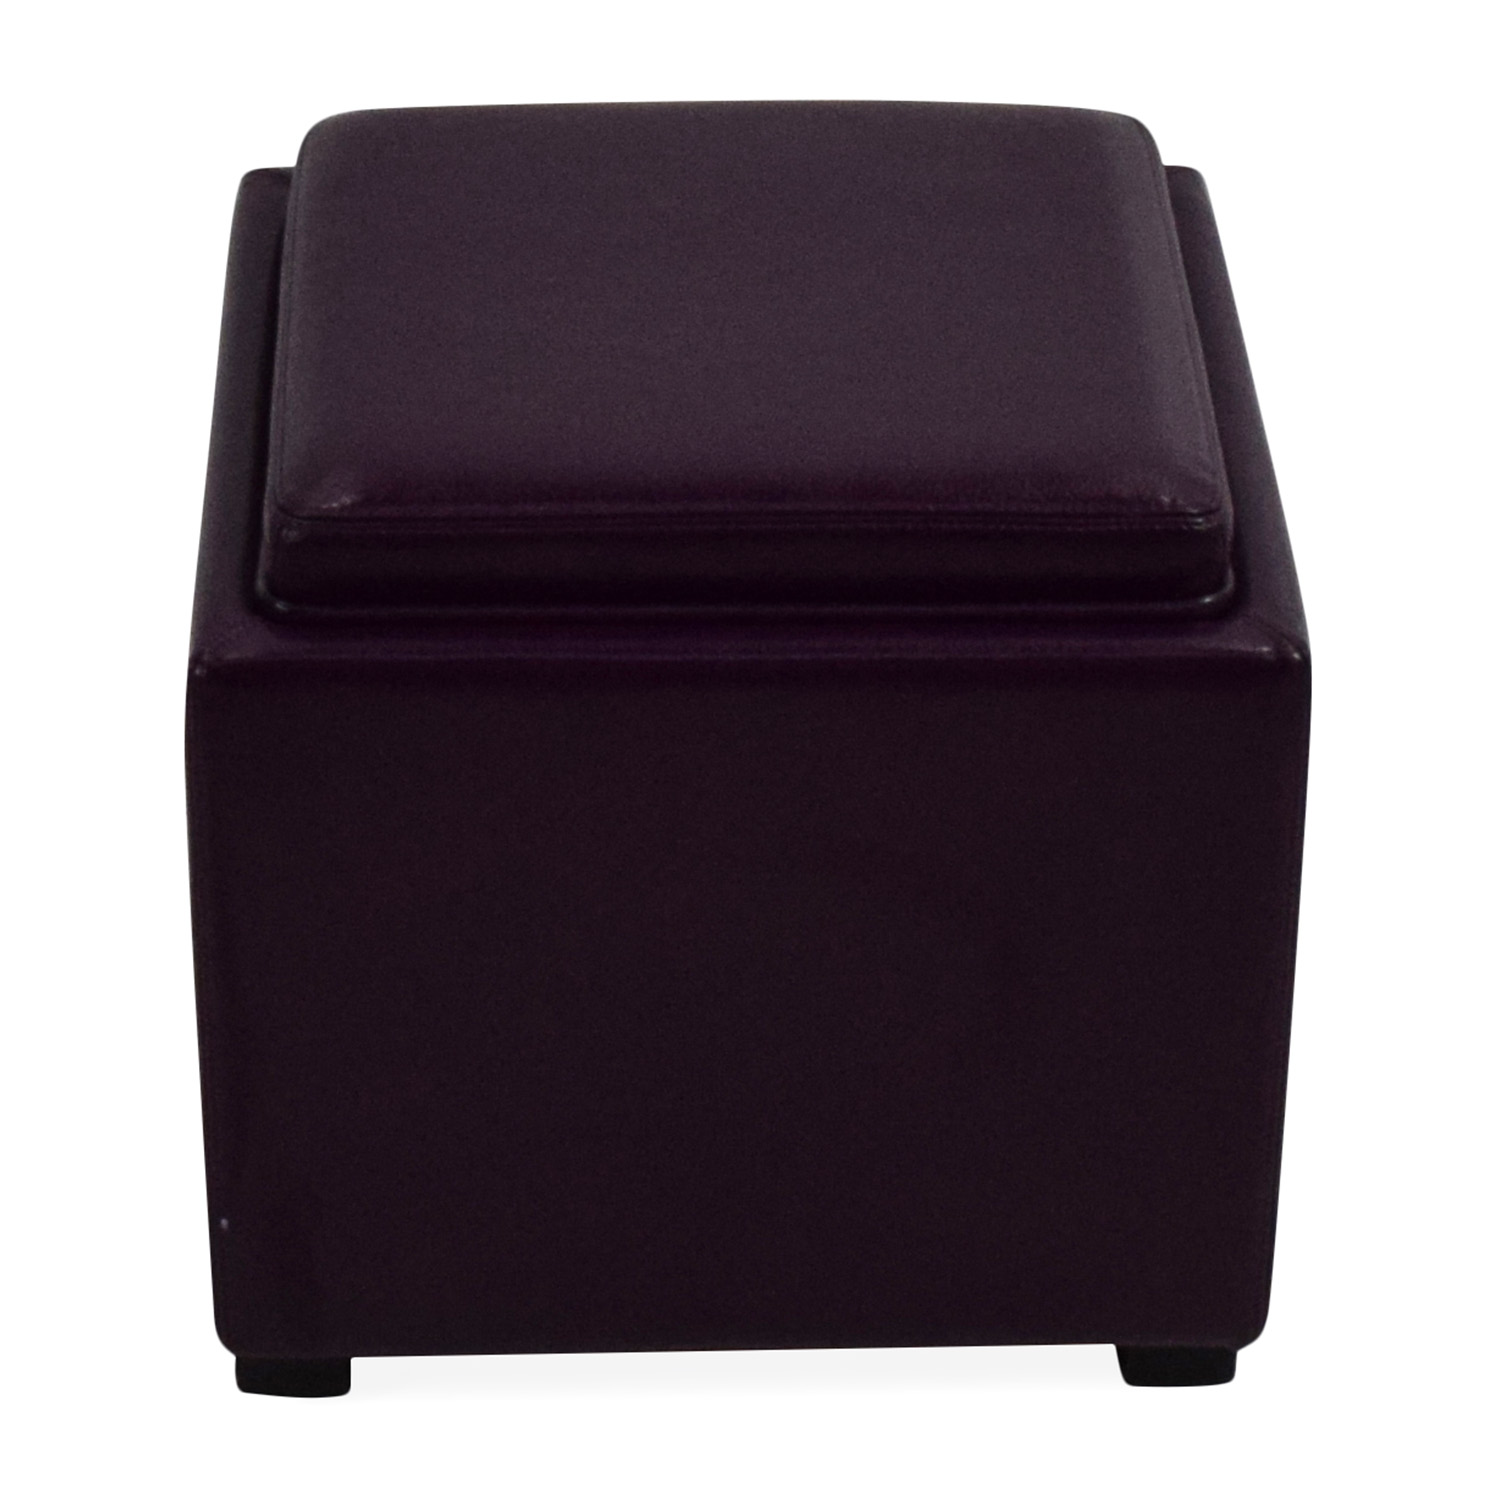 73 Off Crate Barrel Leather Storage Ottoman